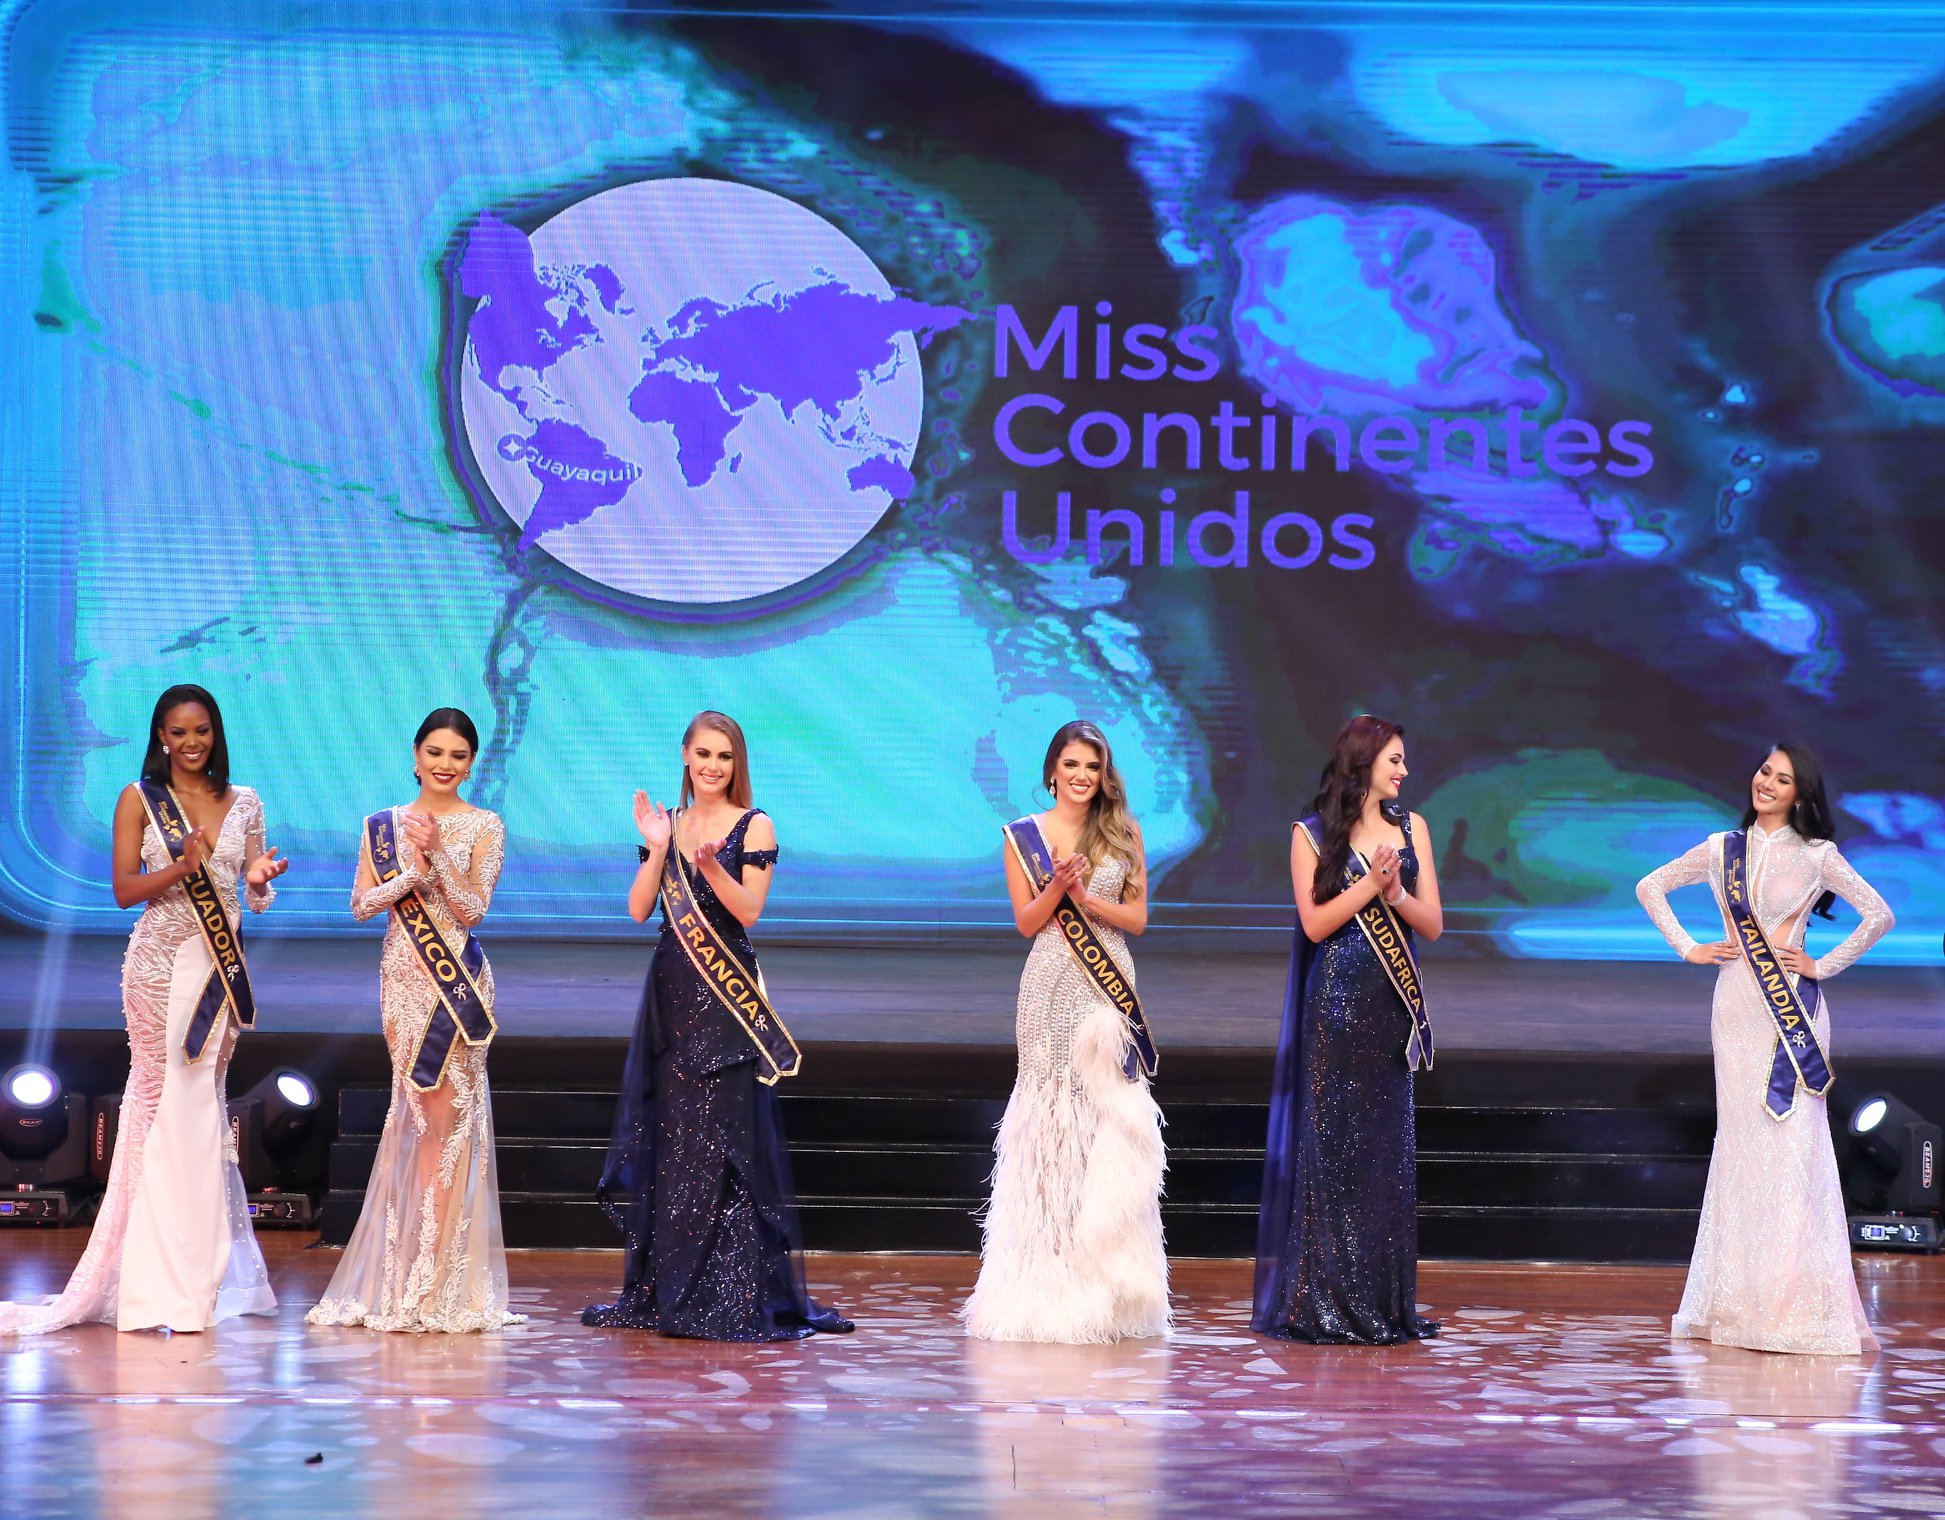 Miss Continentes Unidos